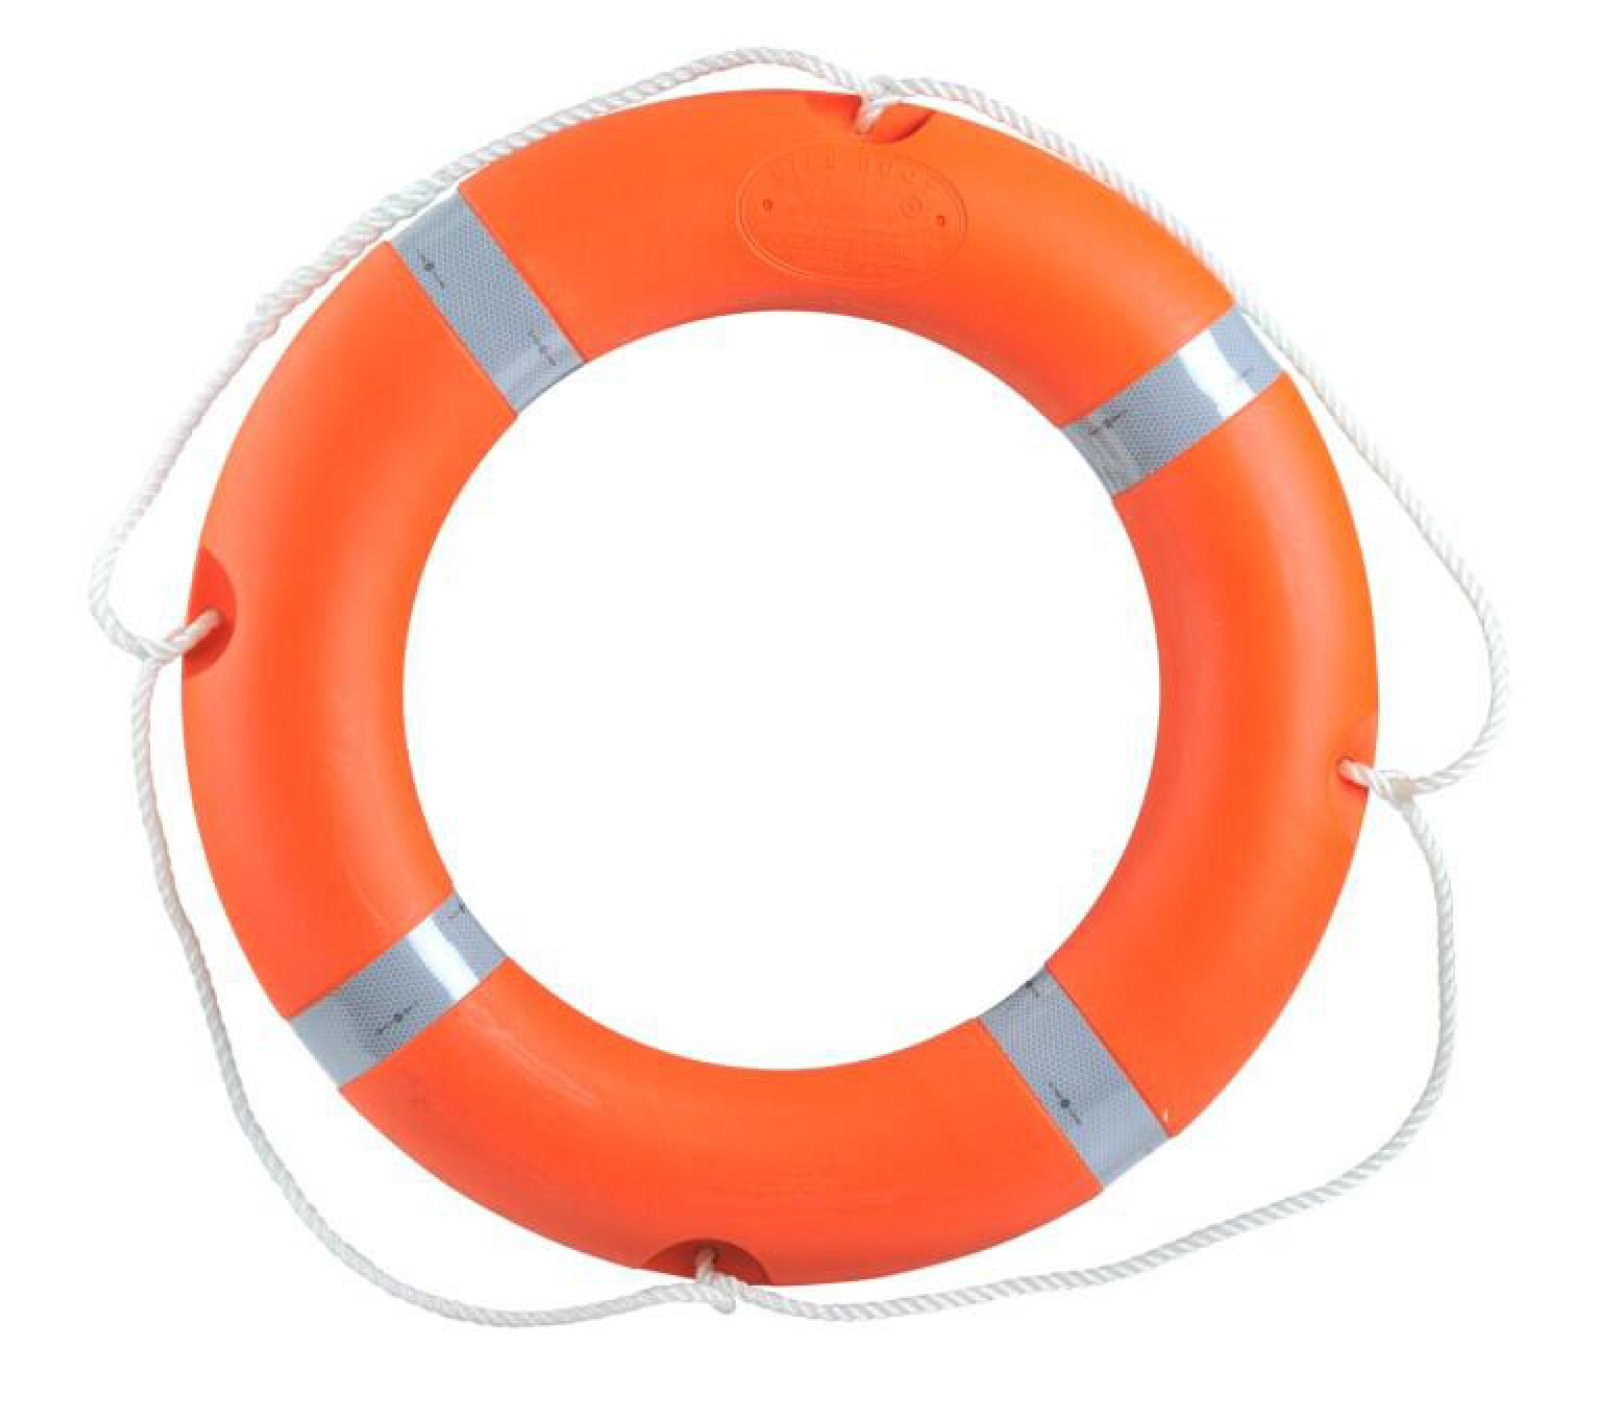 MiDMarine 1.5kg Large Size 58cm, EC & SOLAS Approved Lifebuoy Ring 1